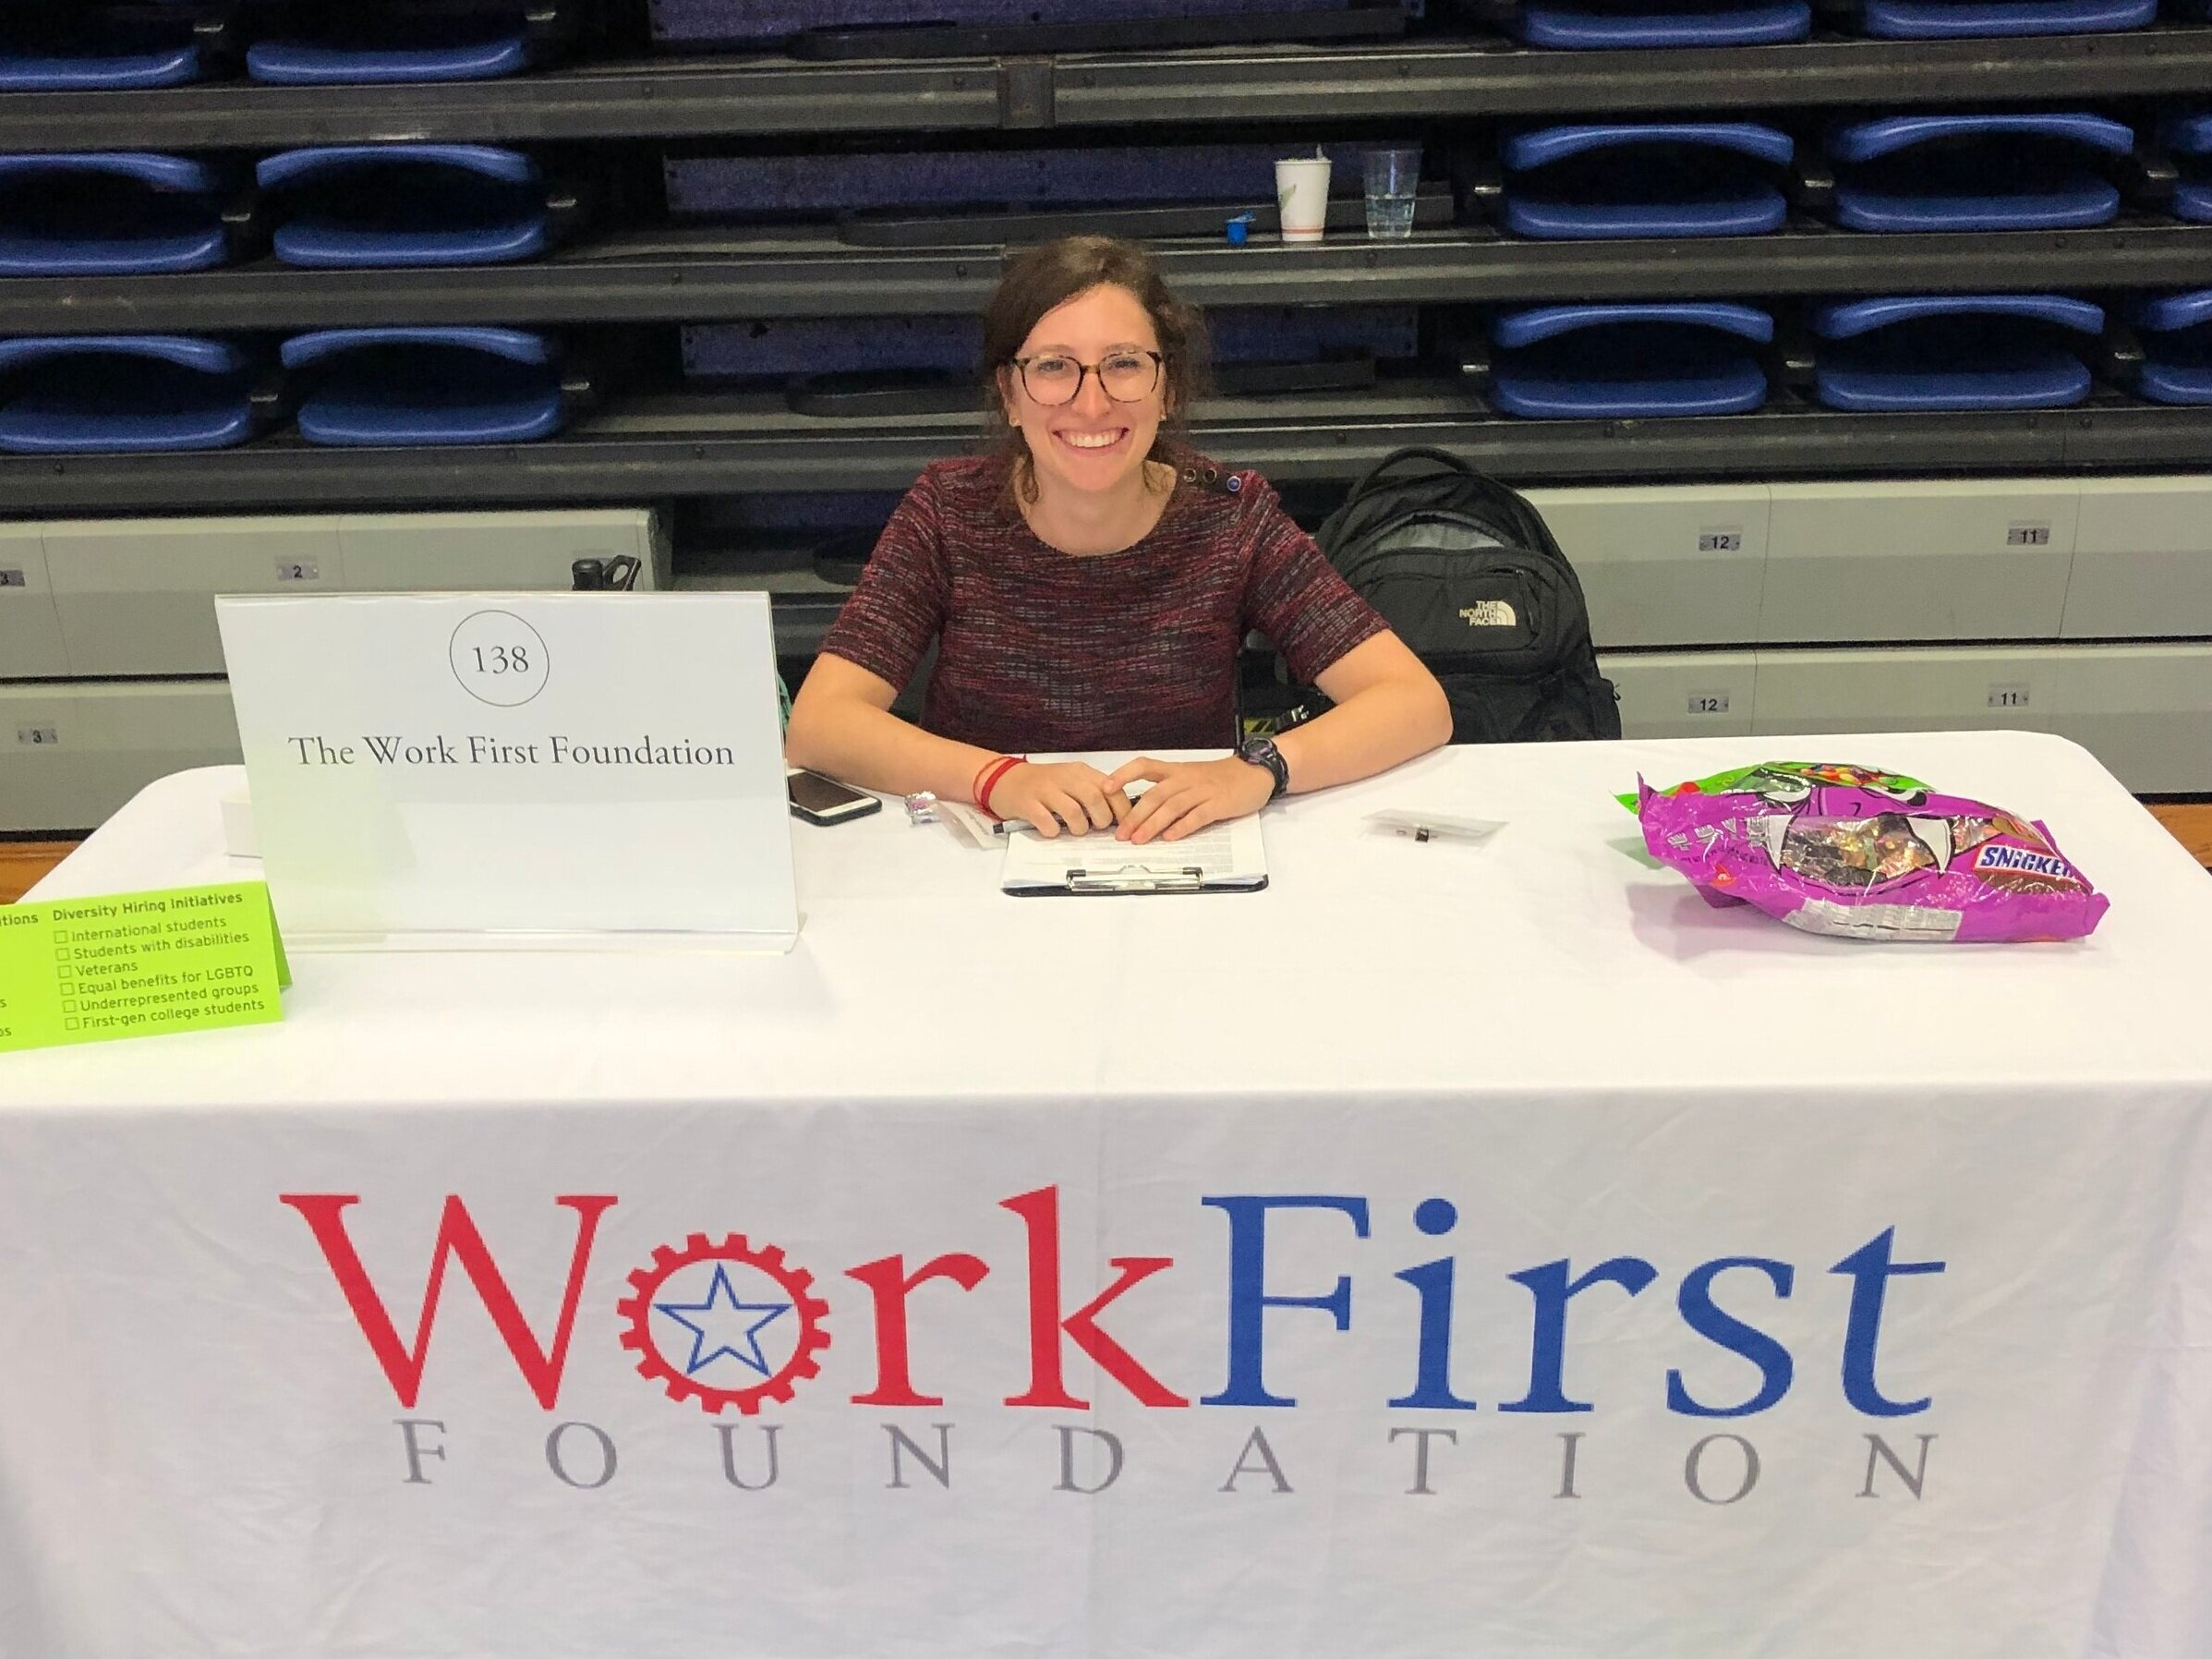 Ally, our Washington D.C. Fellow, spent the day meeting students at the American University Career Fair